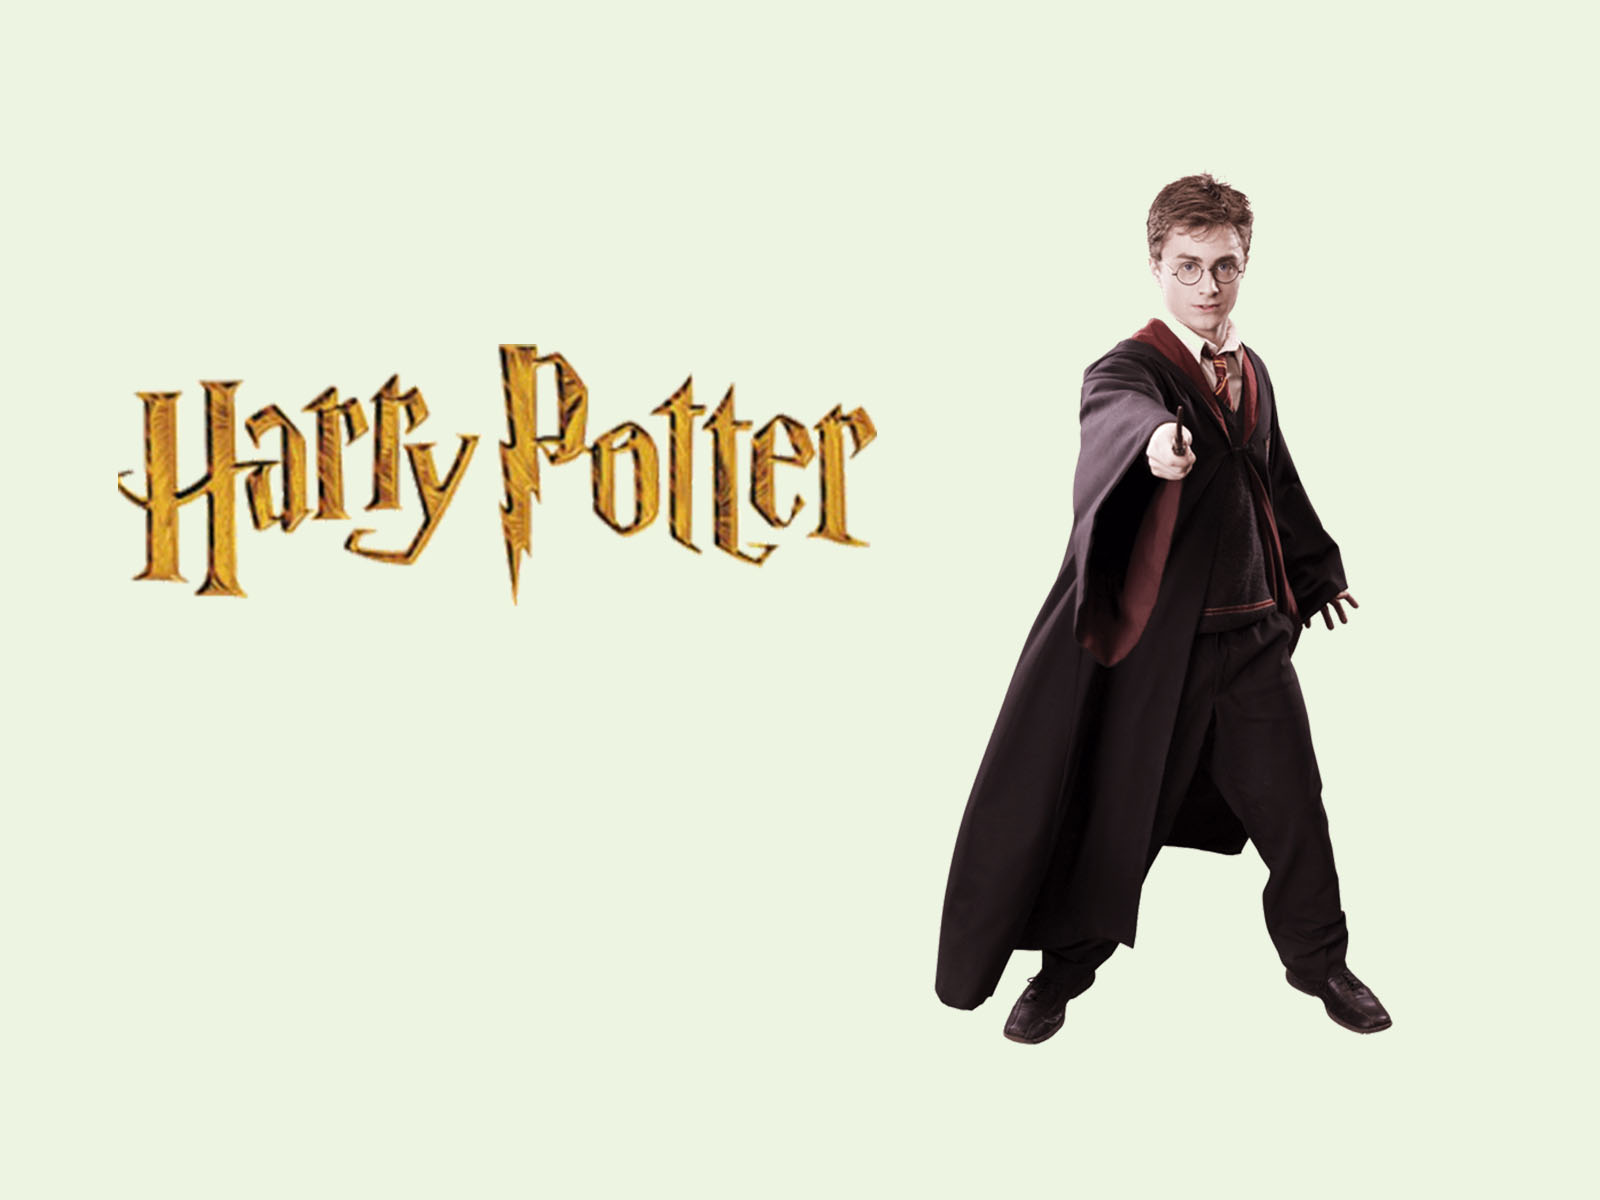 Harry Potter Tv Series Backgrounds Movie Amp Tv Templates